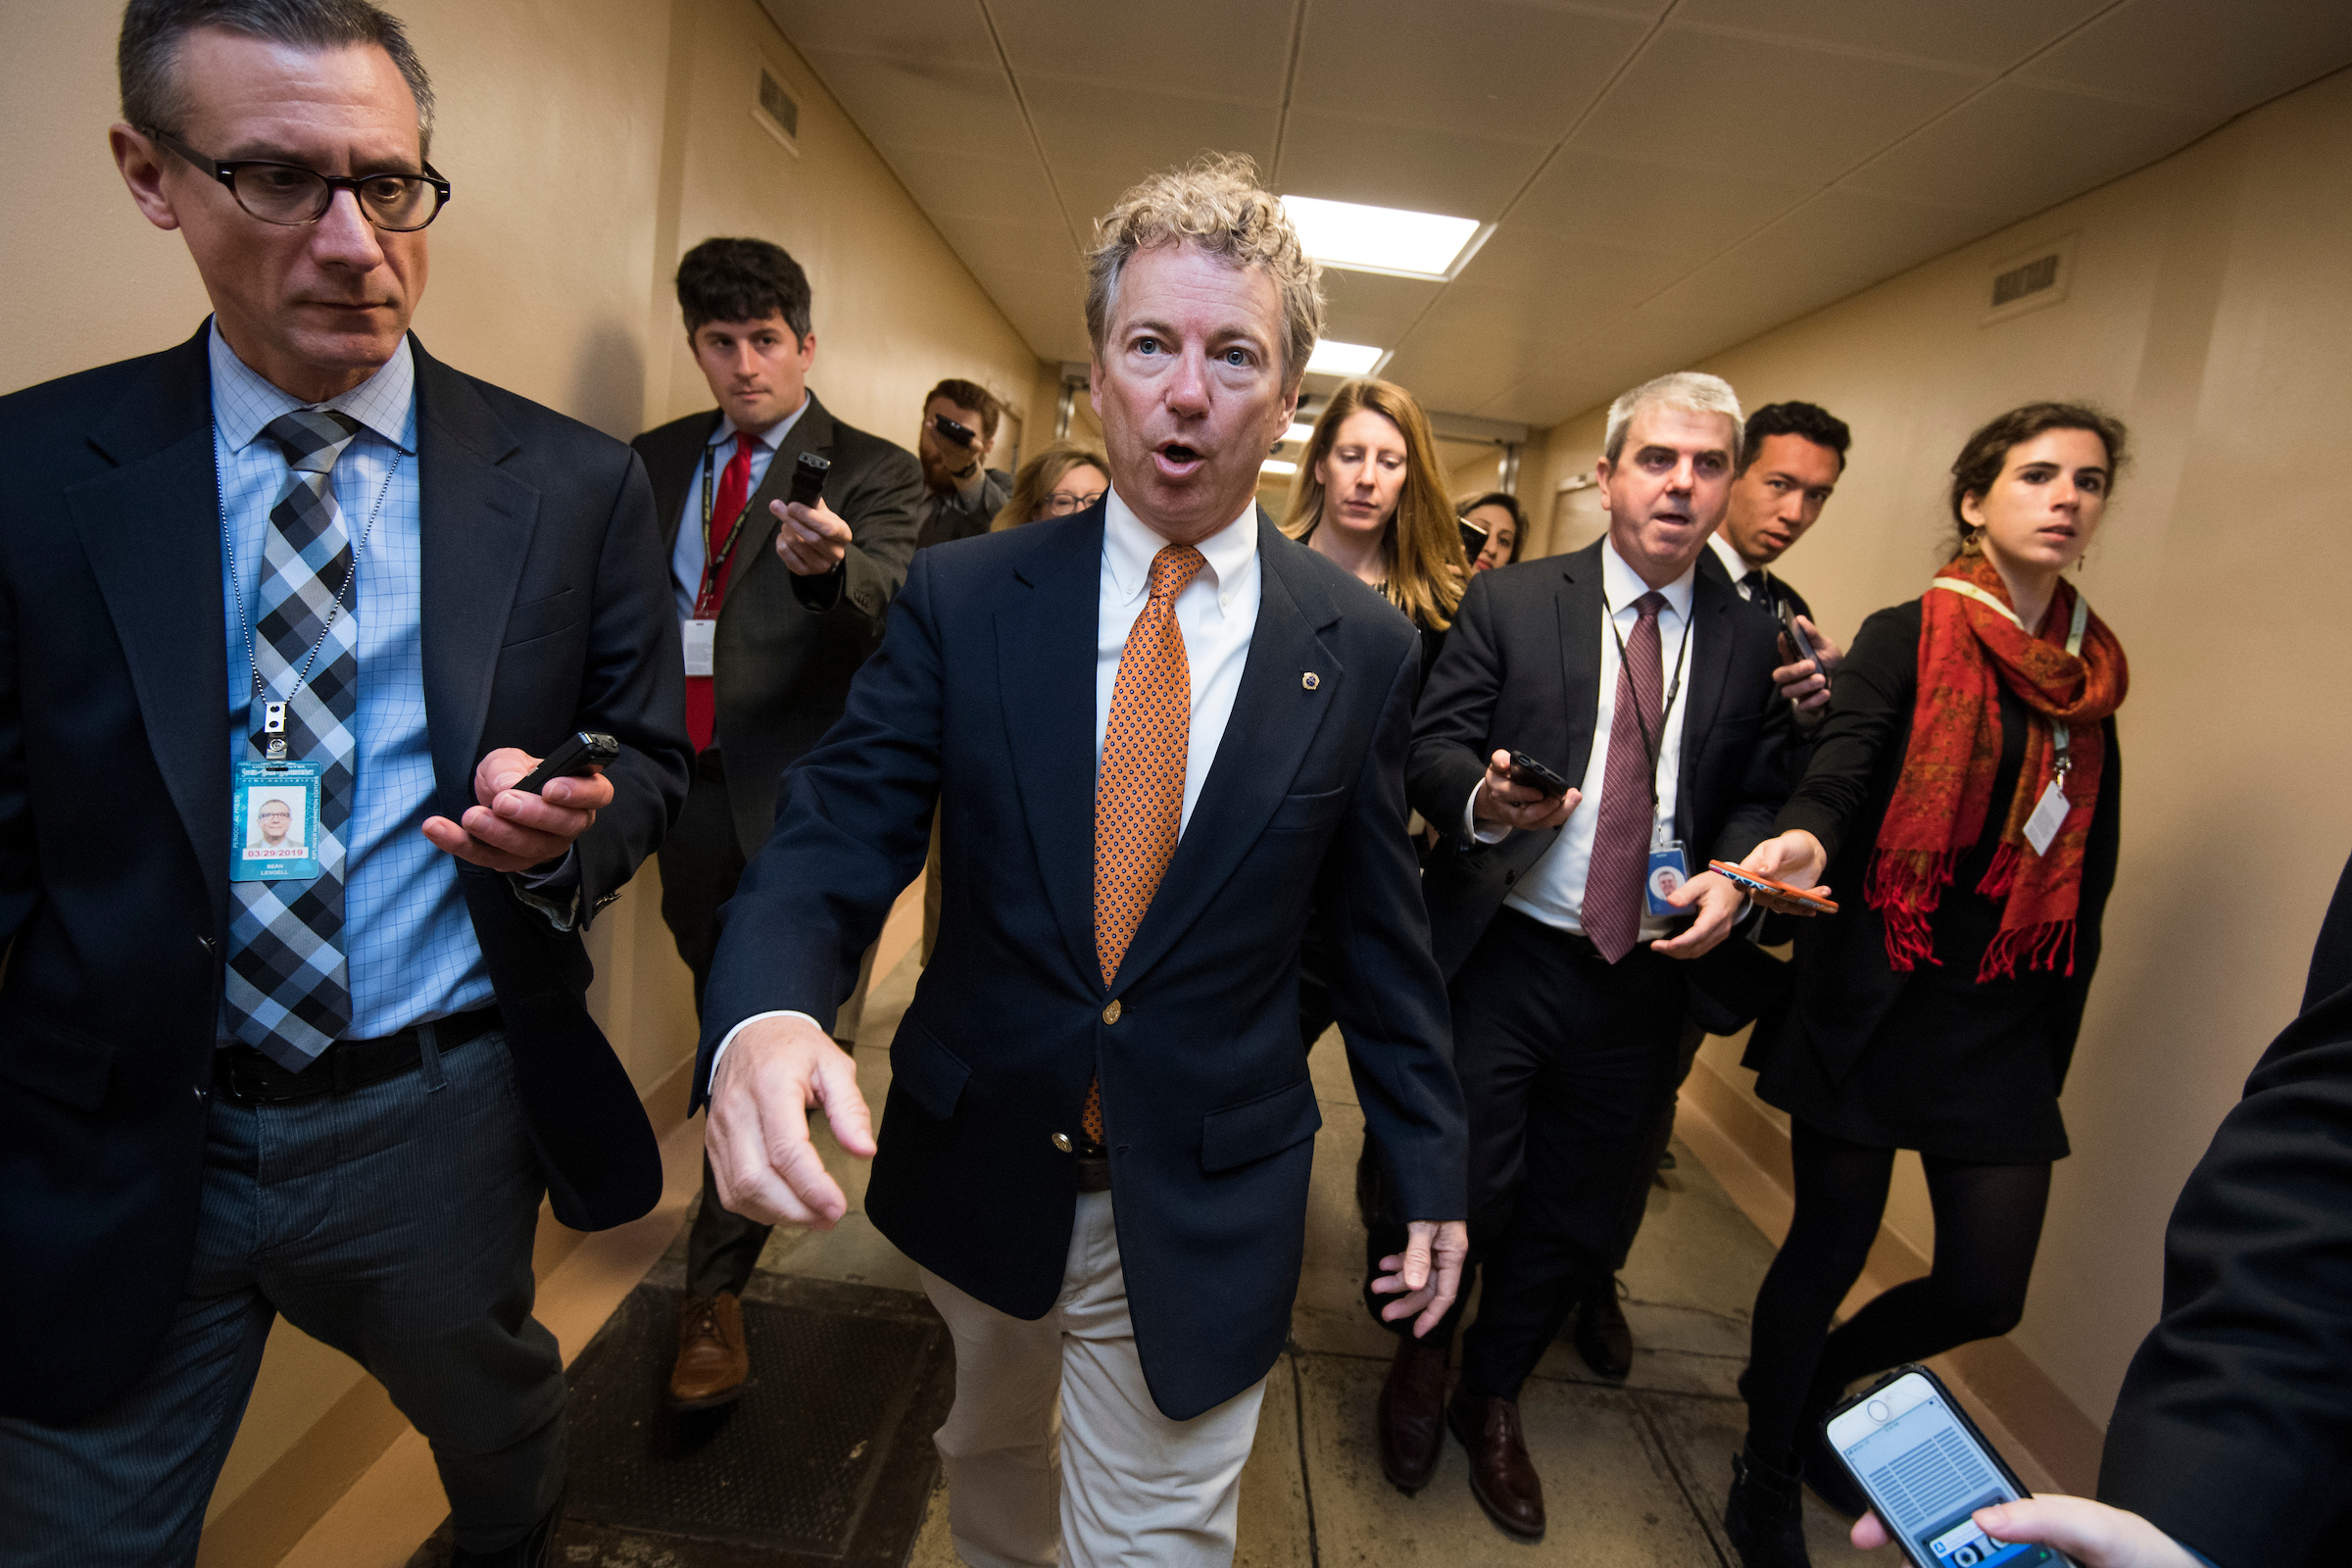 UNITED STATES - MARCH 20: Sen. Rand Paul, R-Ky., talks with reporters in the basement of the Capitol before the Senate Policy luncheons on March 20, 2018. (Photo By Tom Williams/CQ Roll Call)